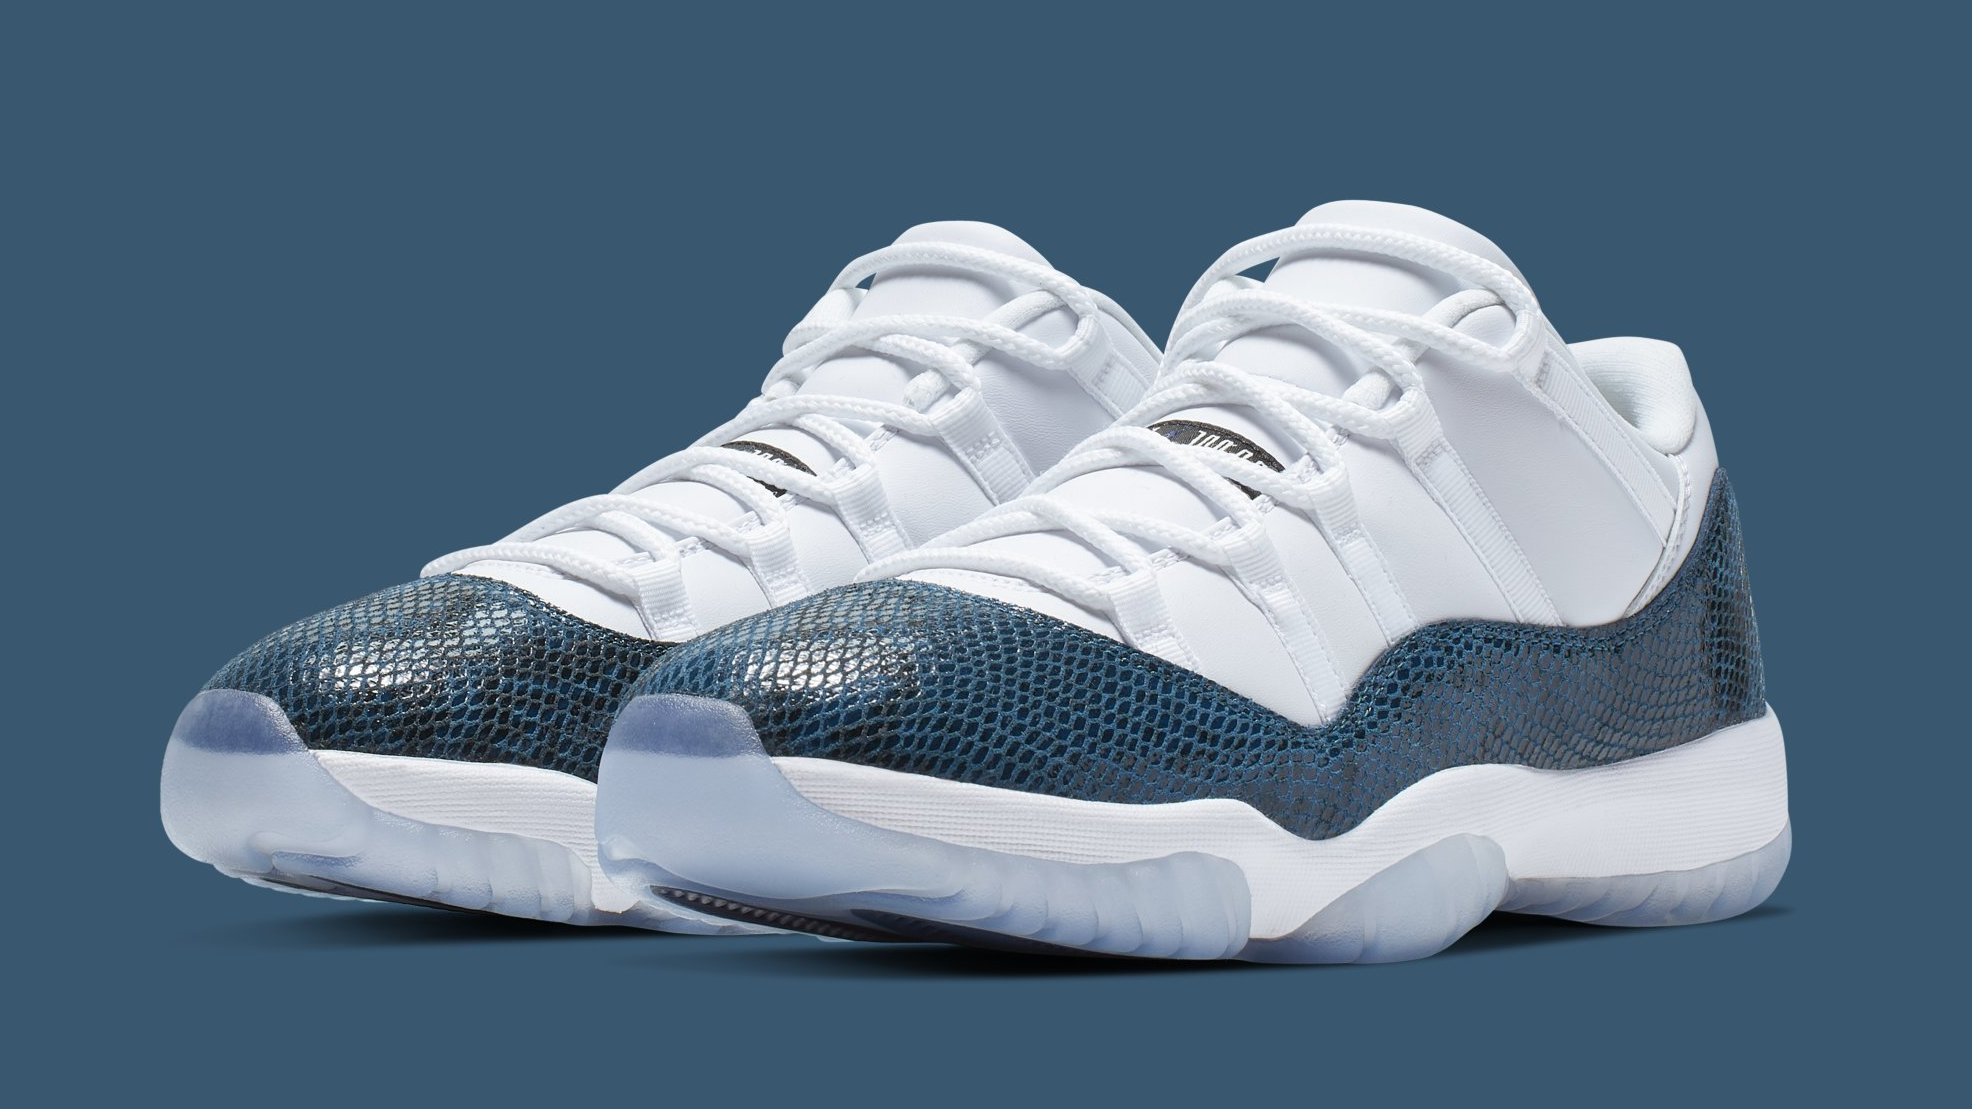 7ab488beec4491 Air Jordan 11 Low  Blue Snakeskin  Release Date CD6846-102